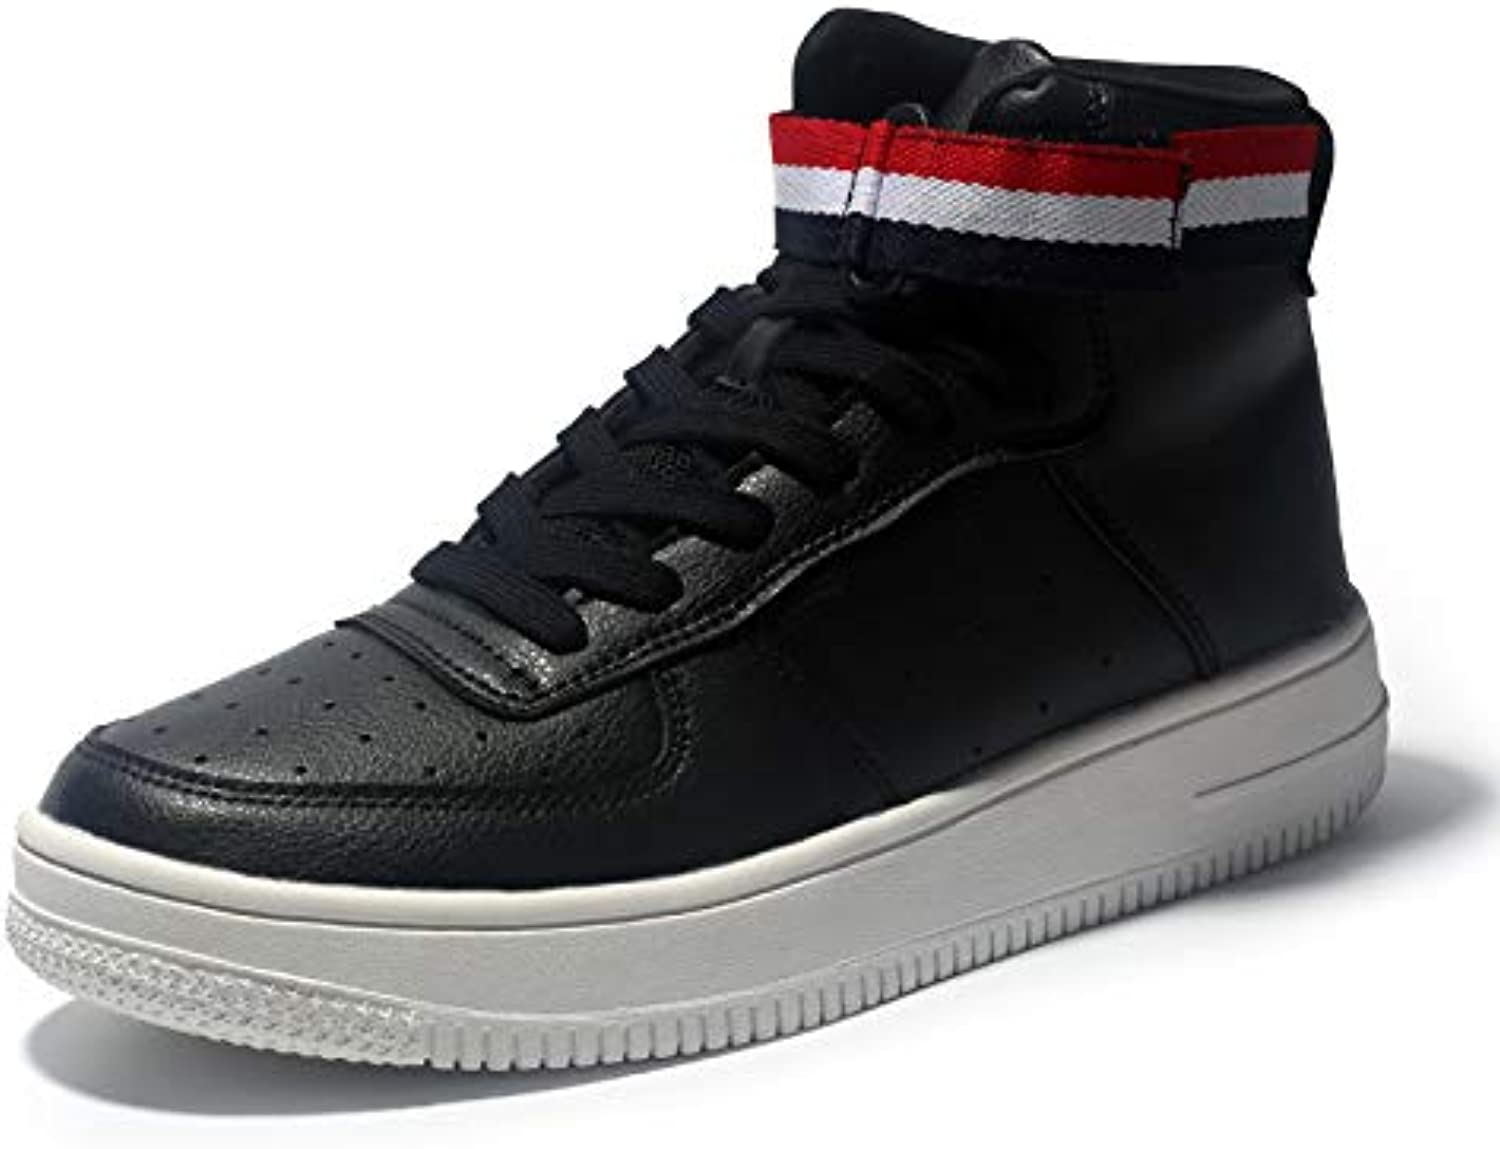 LOVDRAM Men's shoes Spring New Men'S Extra Large Code shoes Students White shoes High To Help Casual Sports shoes Men'S shoes